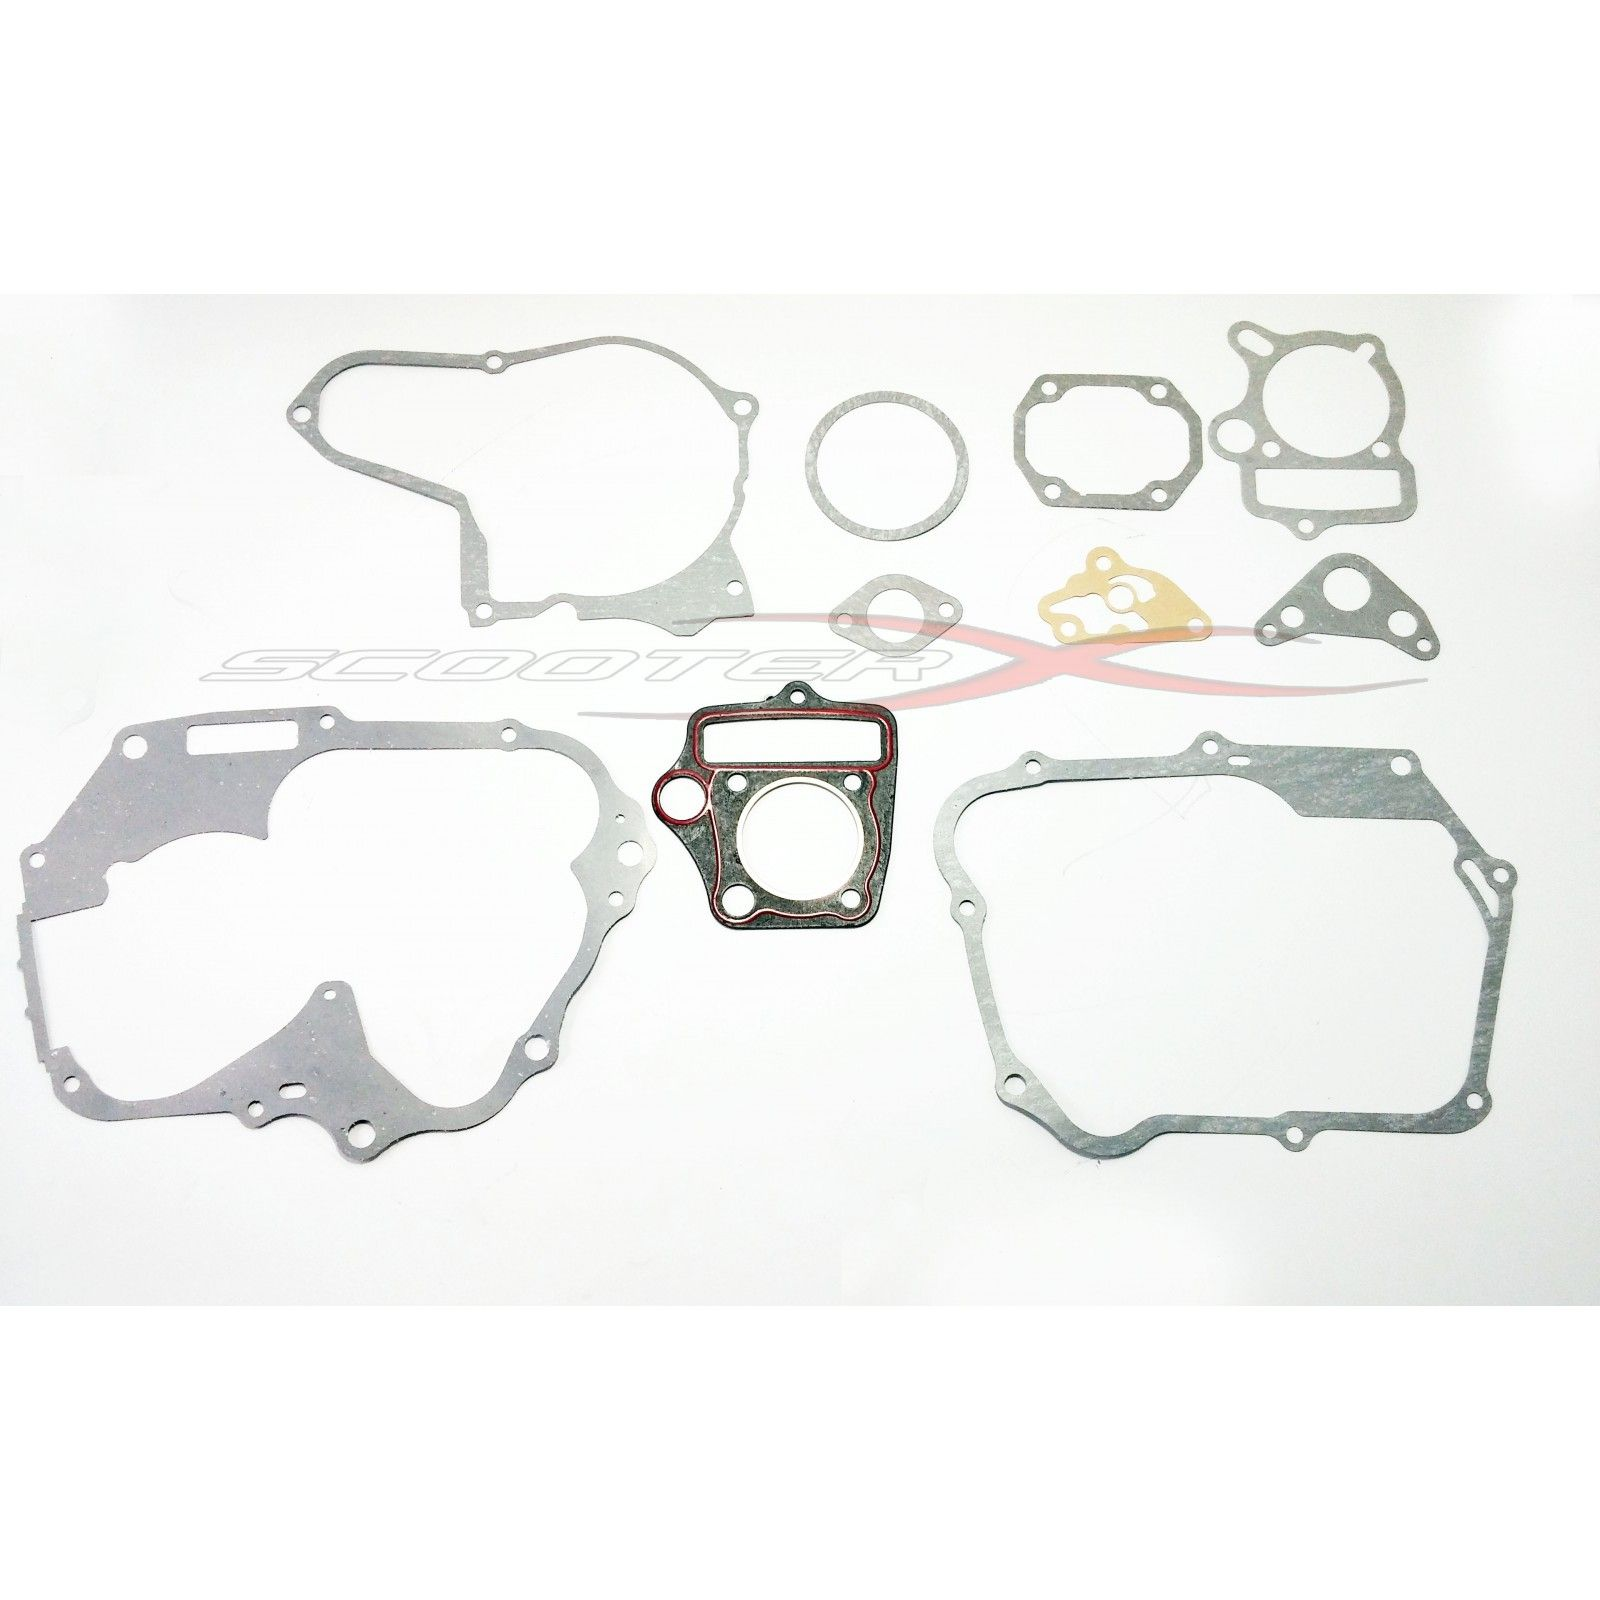 Full Gasket Kit Lifan 70cc 47mm Engine